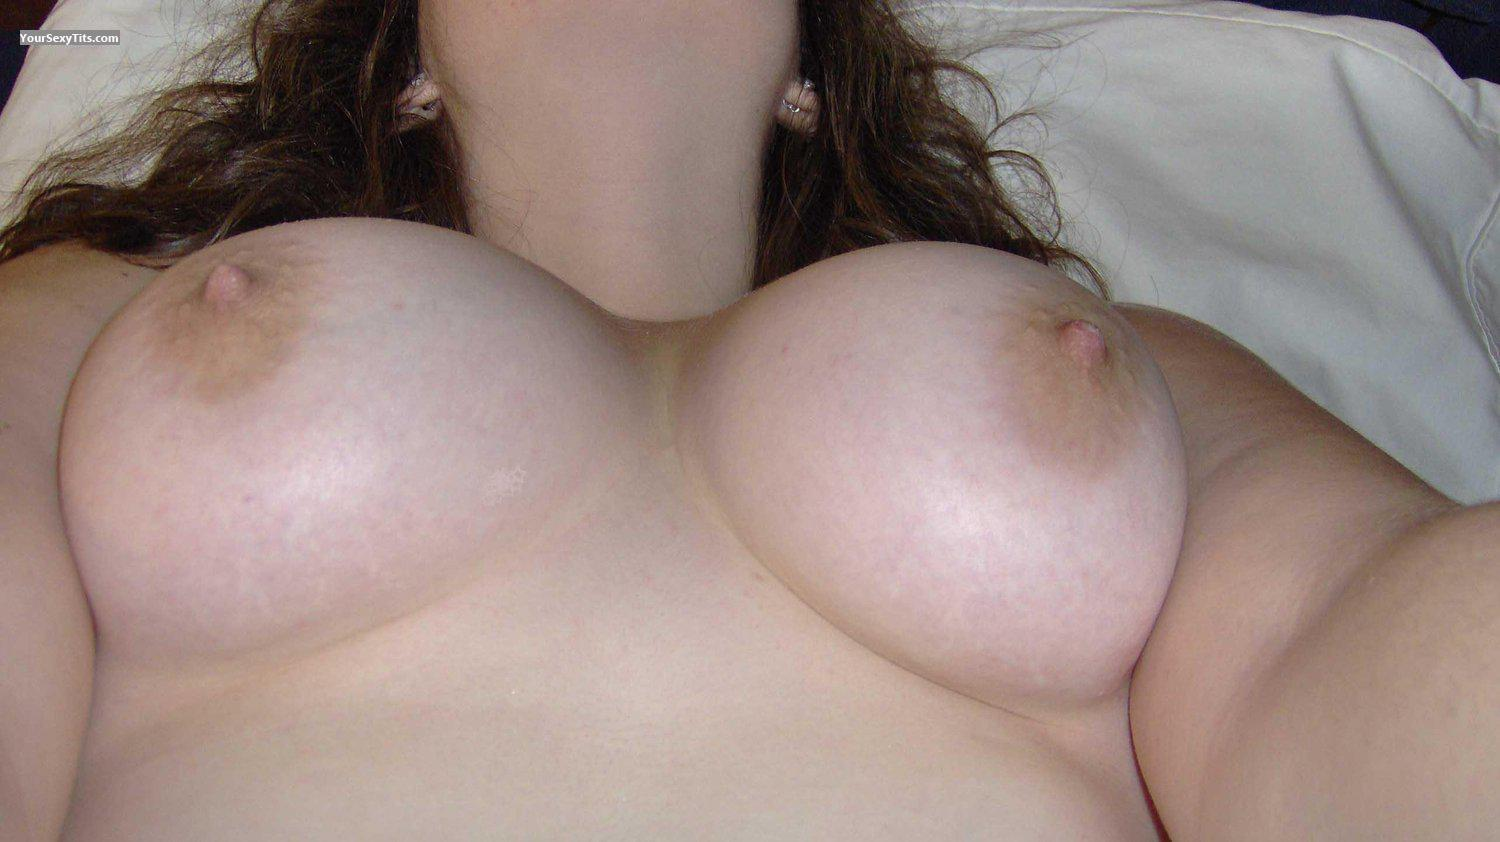 Tit Flash: My Big Tits (Selfie) - KT from United States